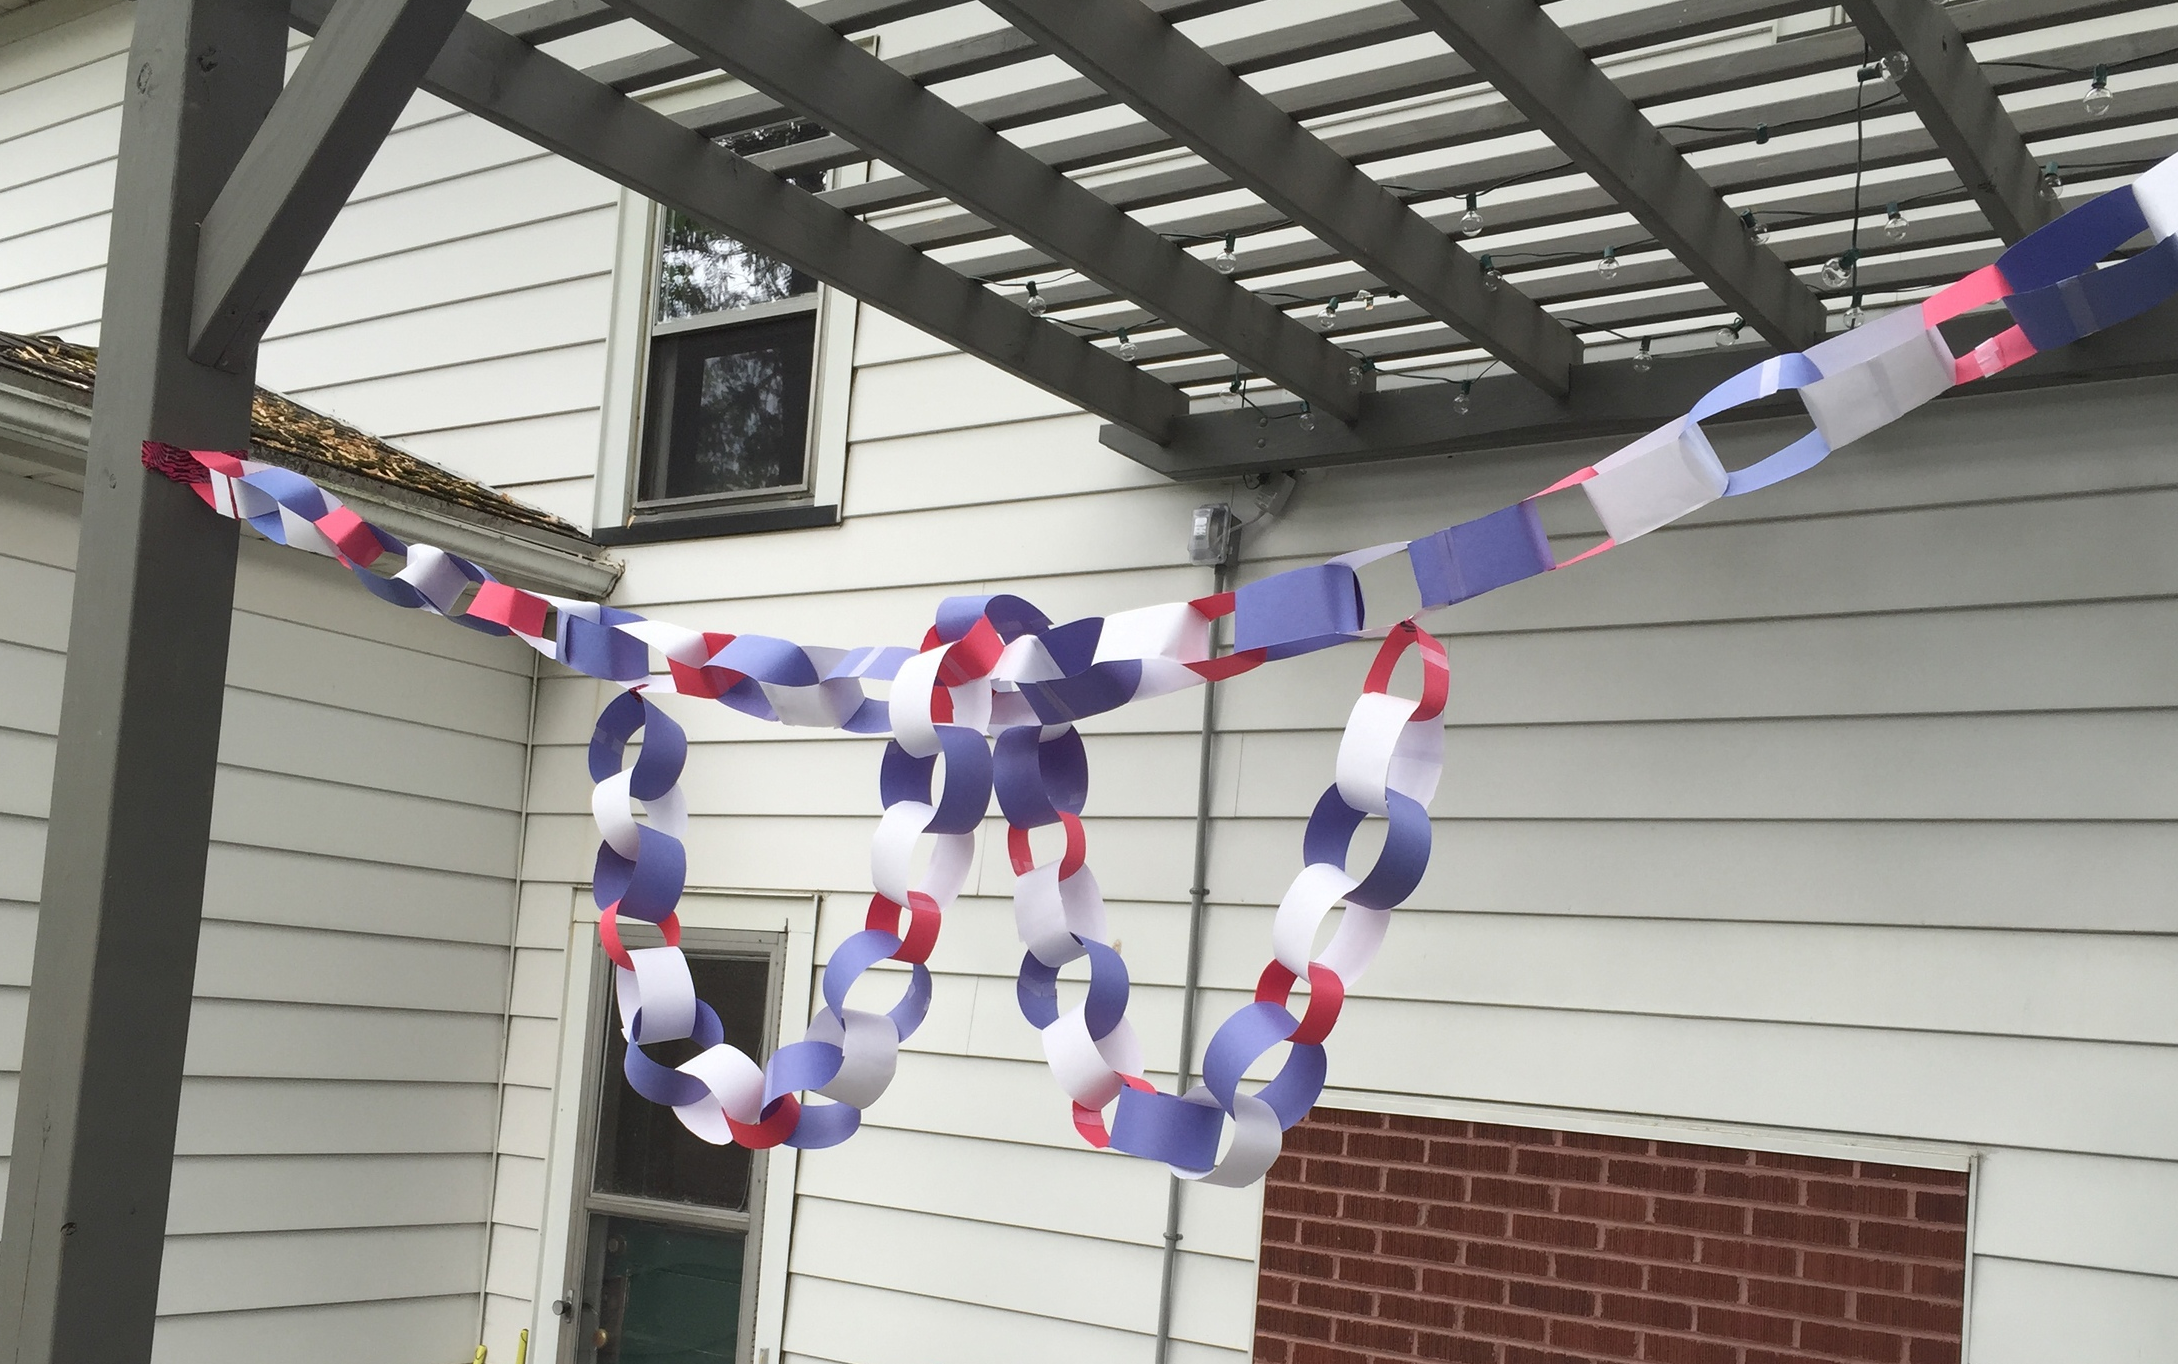 Paper chains courtesy of the Converter's kids.